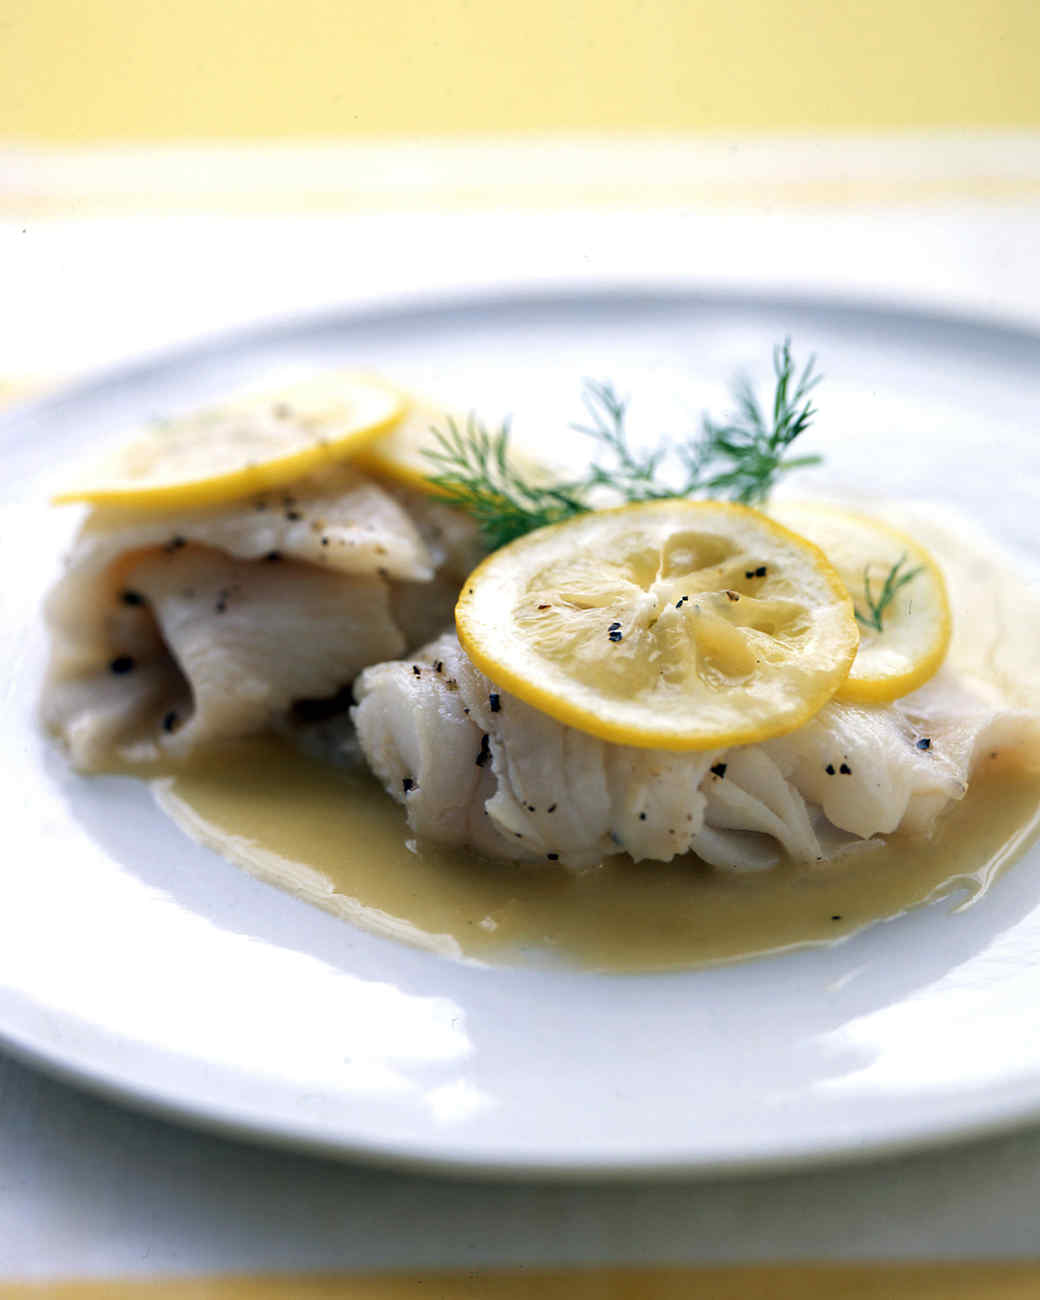 Sole with Lemon-Butter Sauce